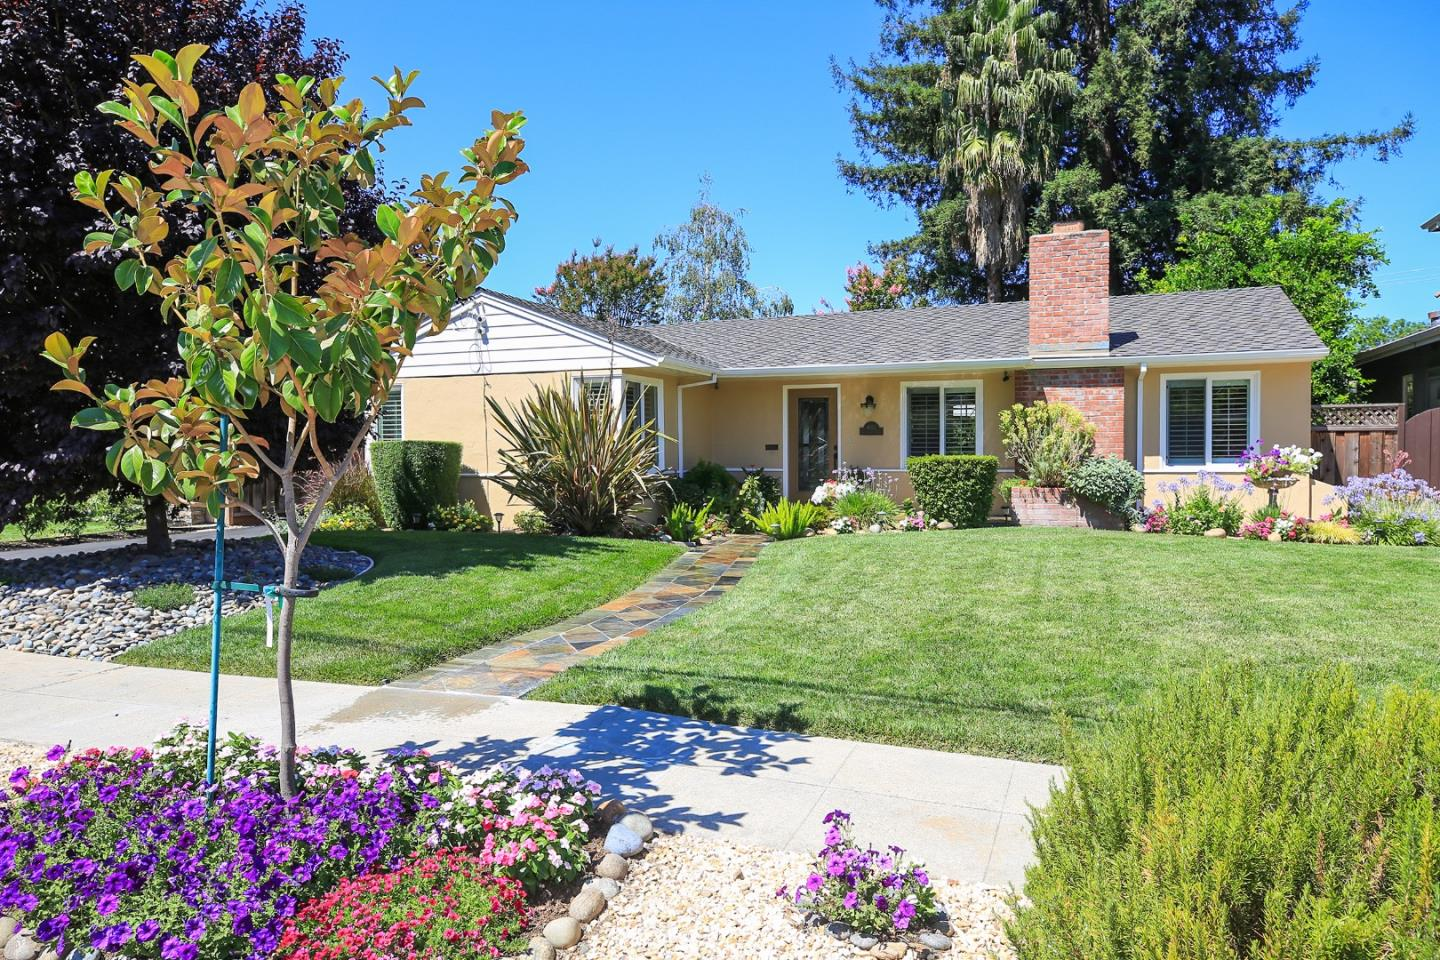 Single Family Home for Sale at 1653 Collingwood Avenue San Jose, California 95125 United States